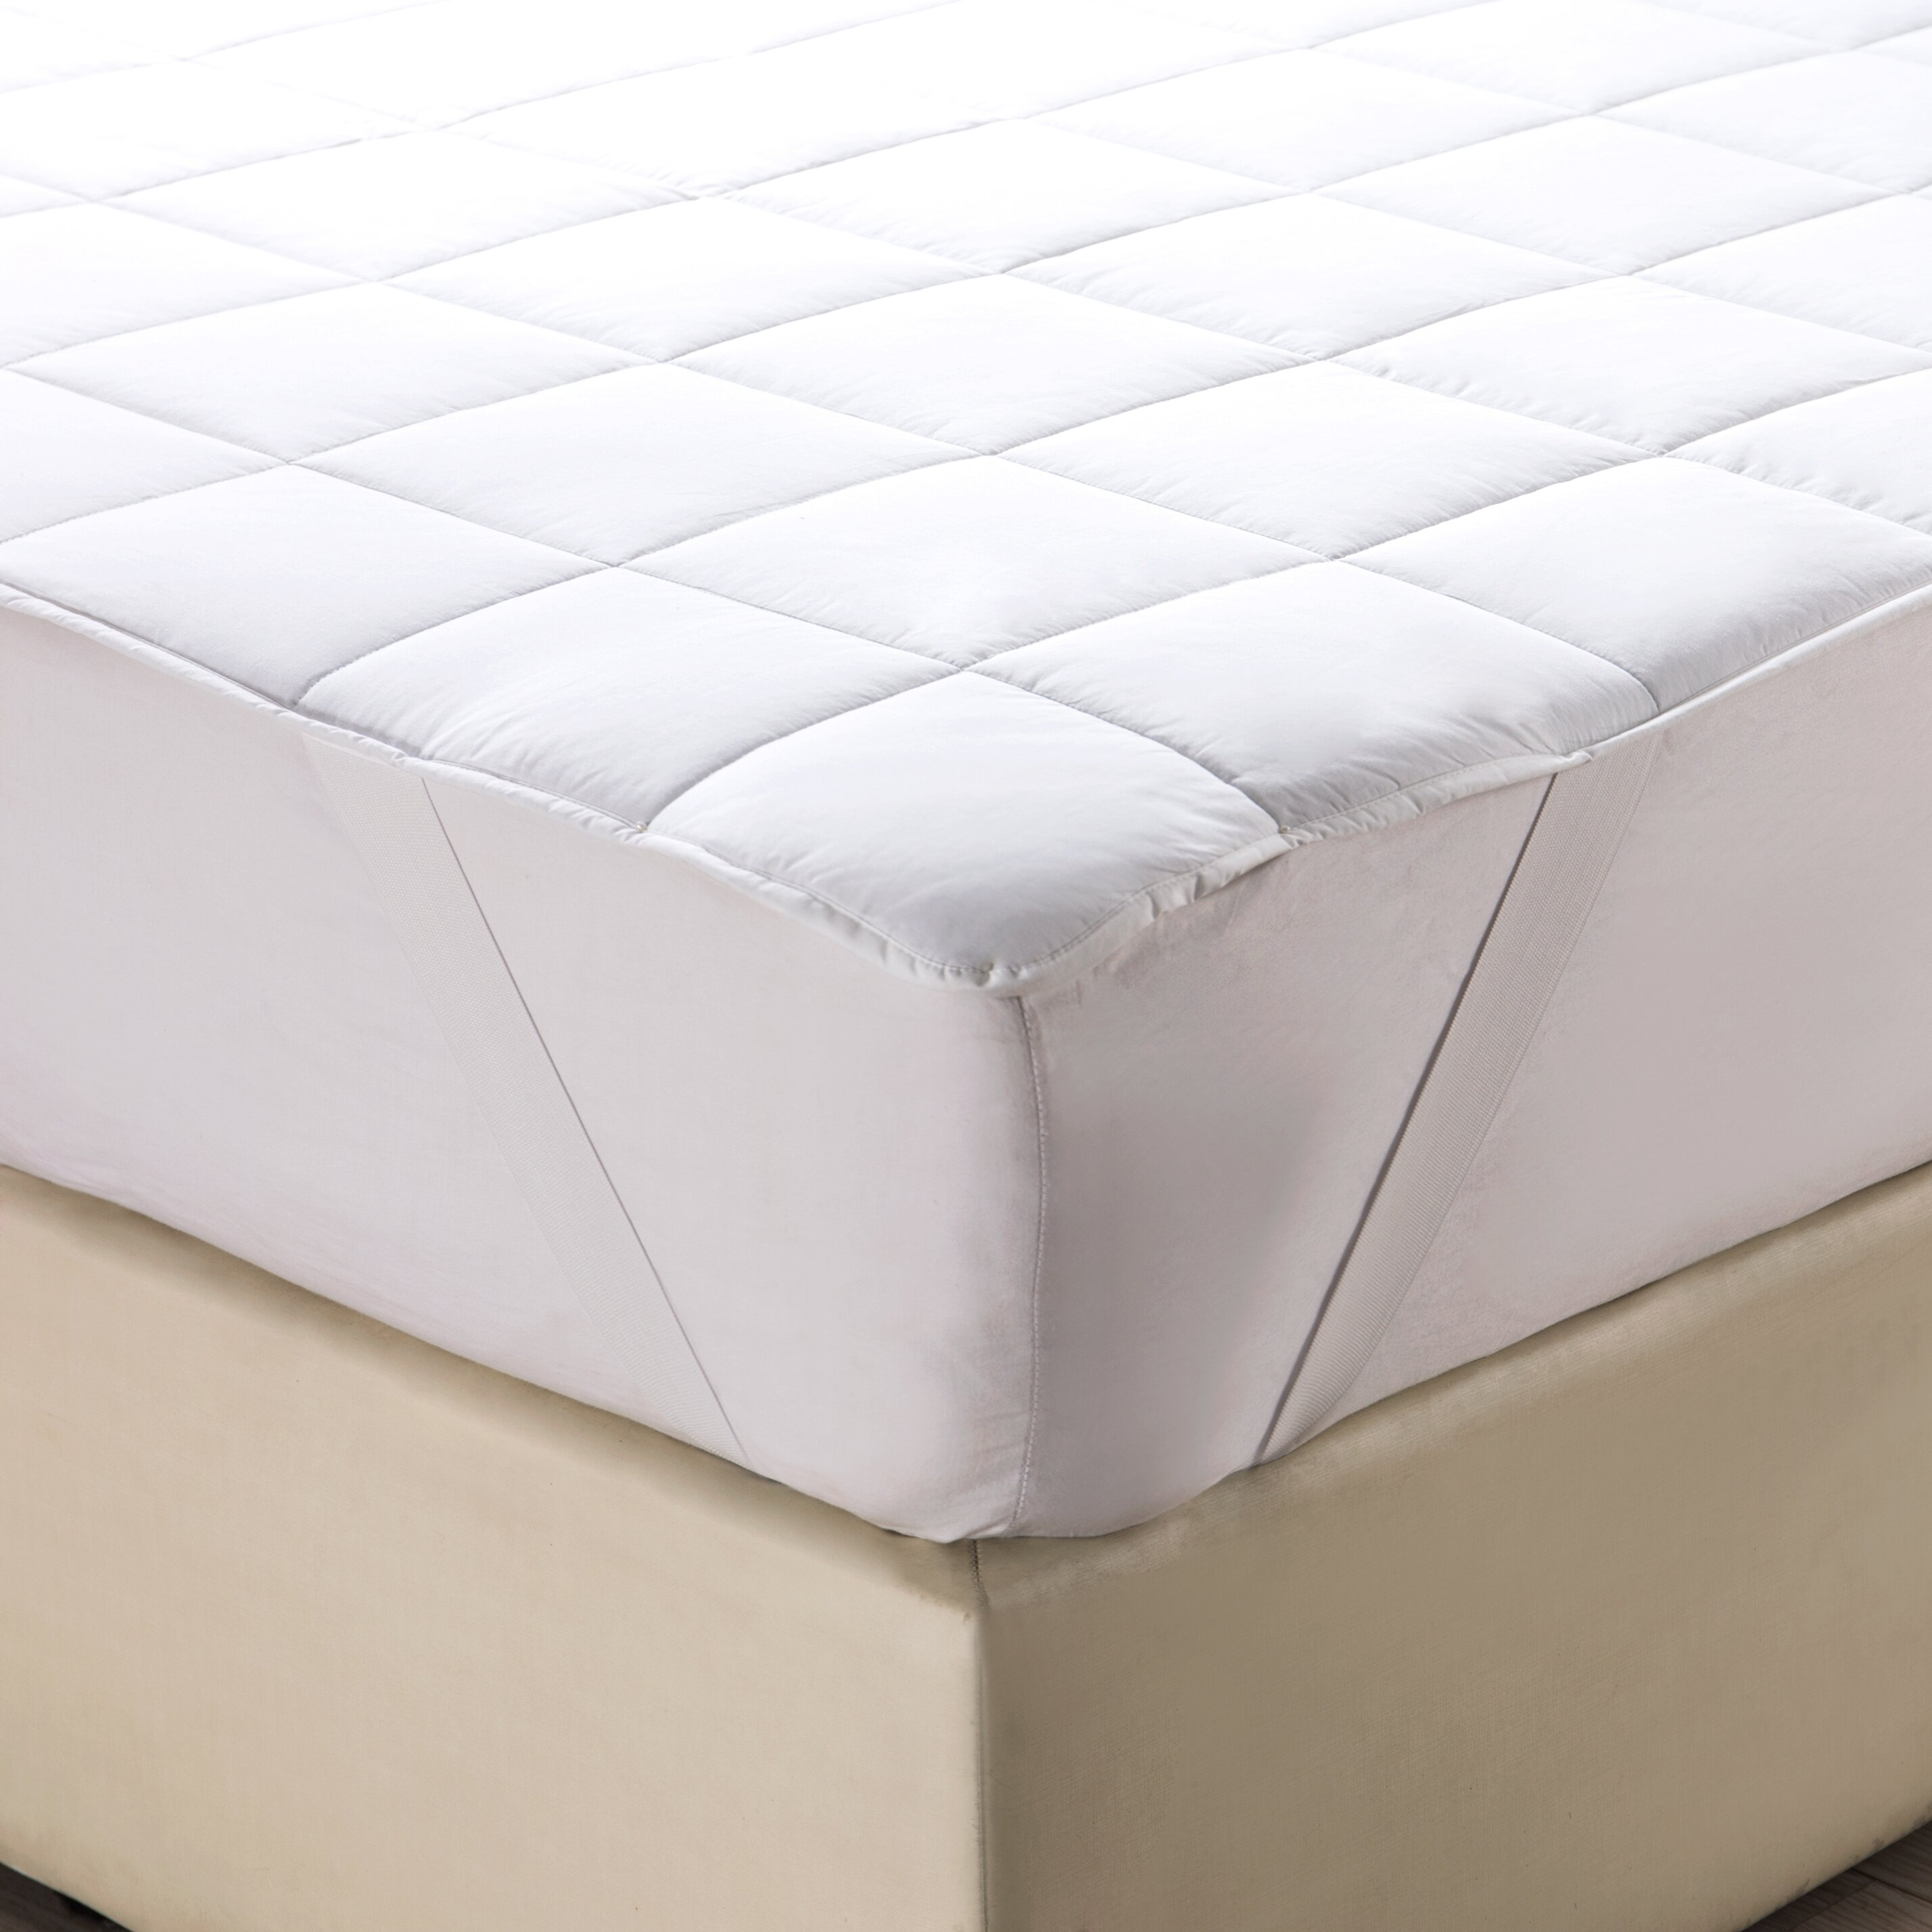 InovatexLLC Waterproof Mattress Pad amp Reviews Wayfair : Pur Luxe Waterproof Mattress Pad 800000000 from www.wayfair.com size 2857 x 2857 jpeg 799kB